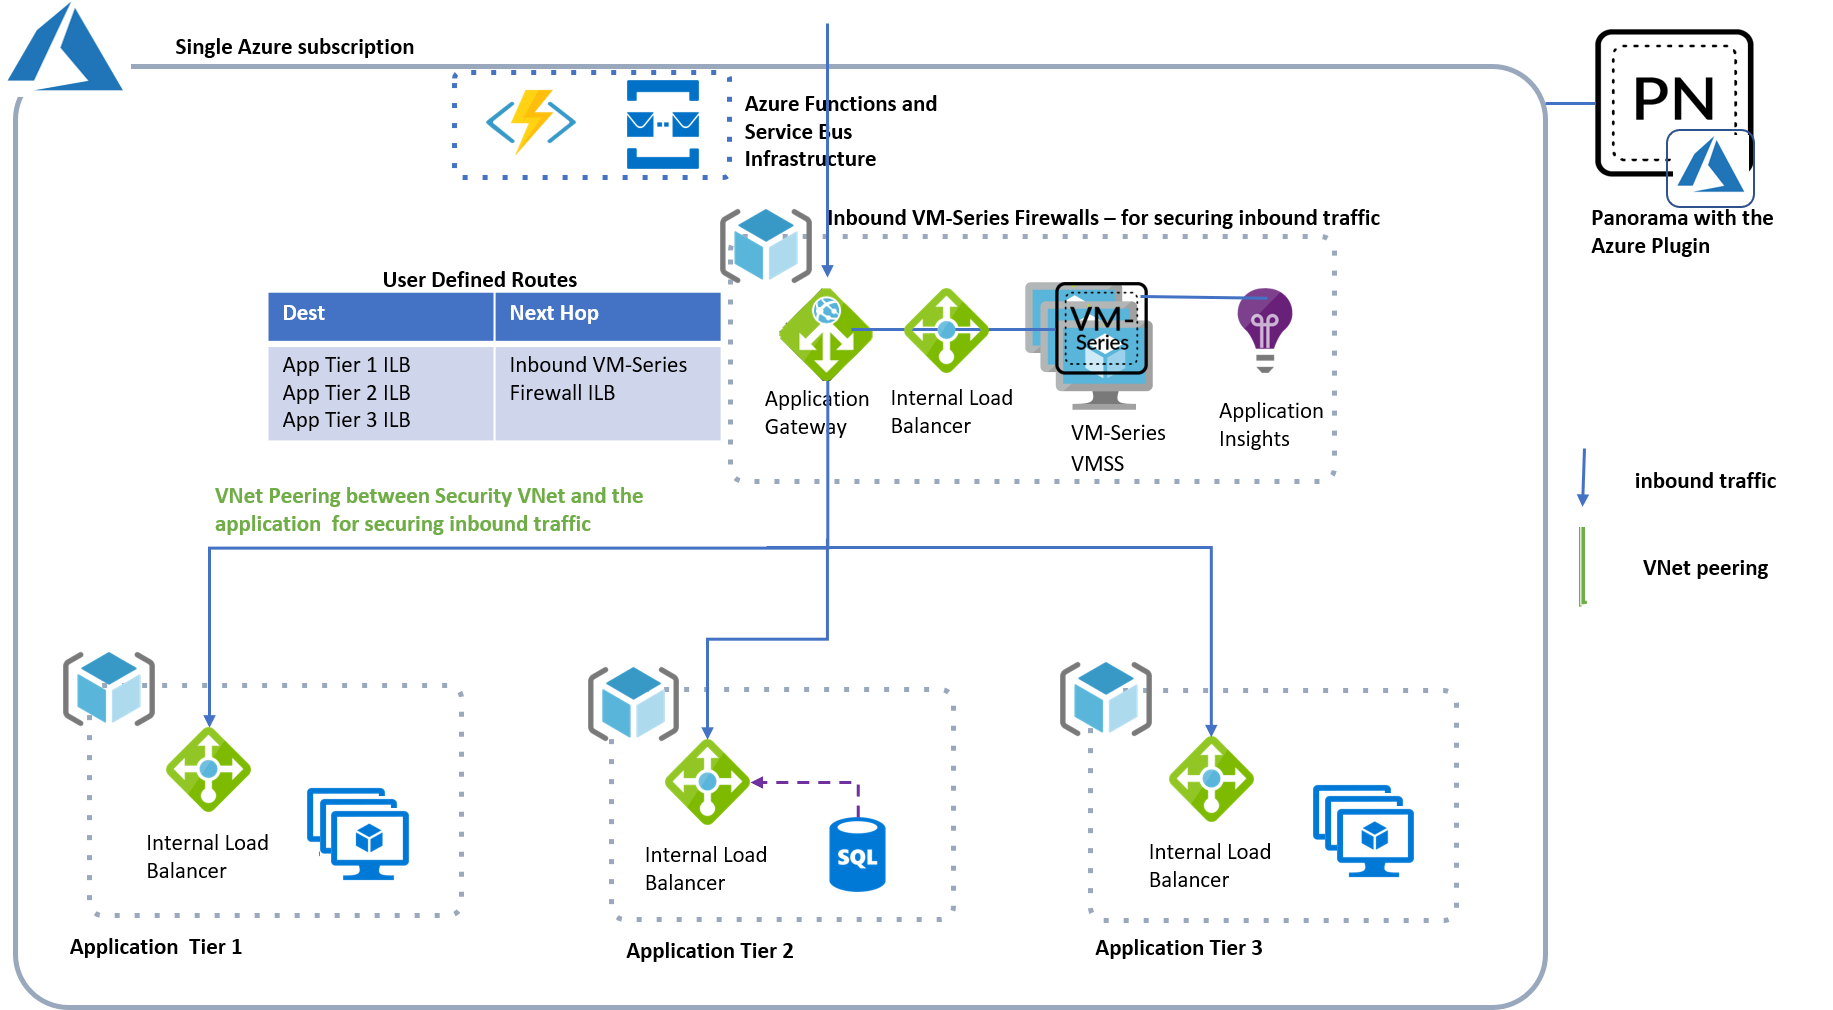 azure-autoscaling-concept-greenfield-inbound.png